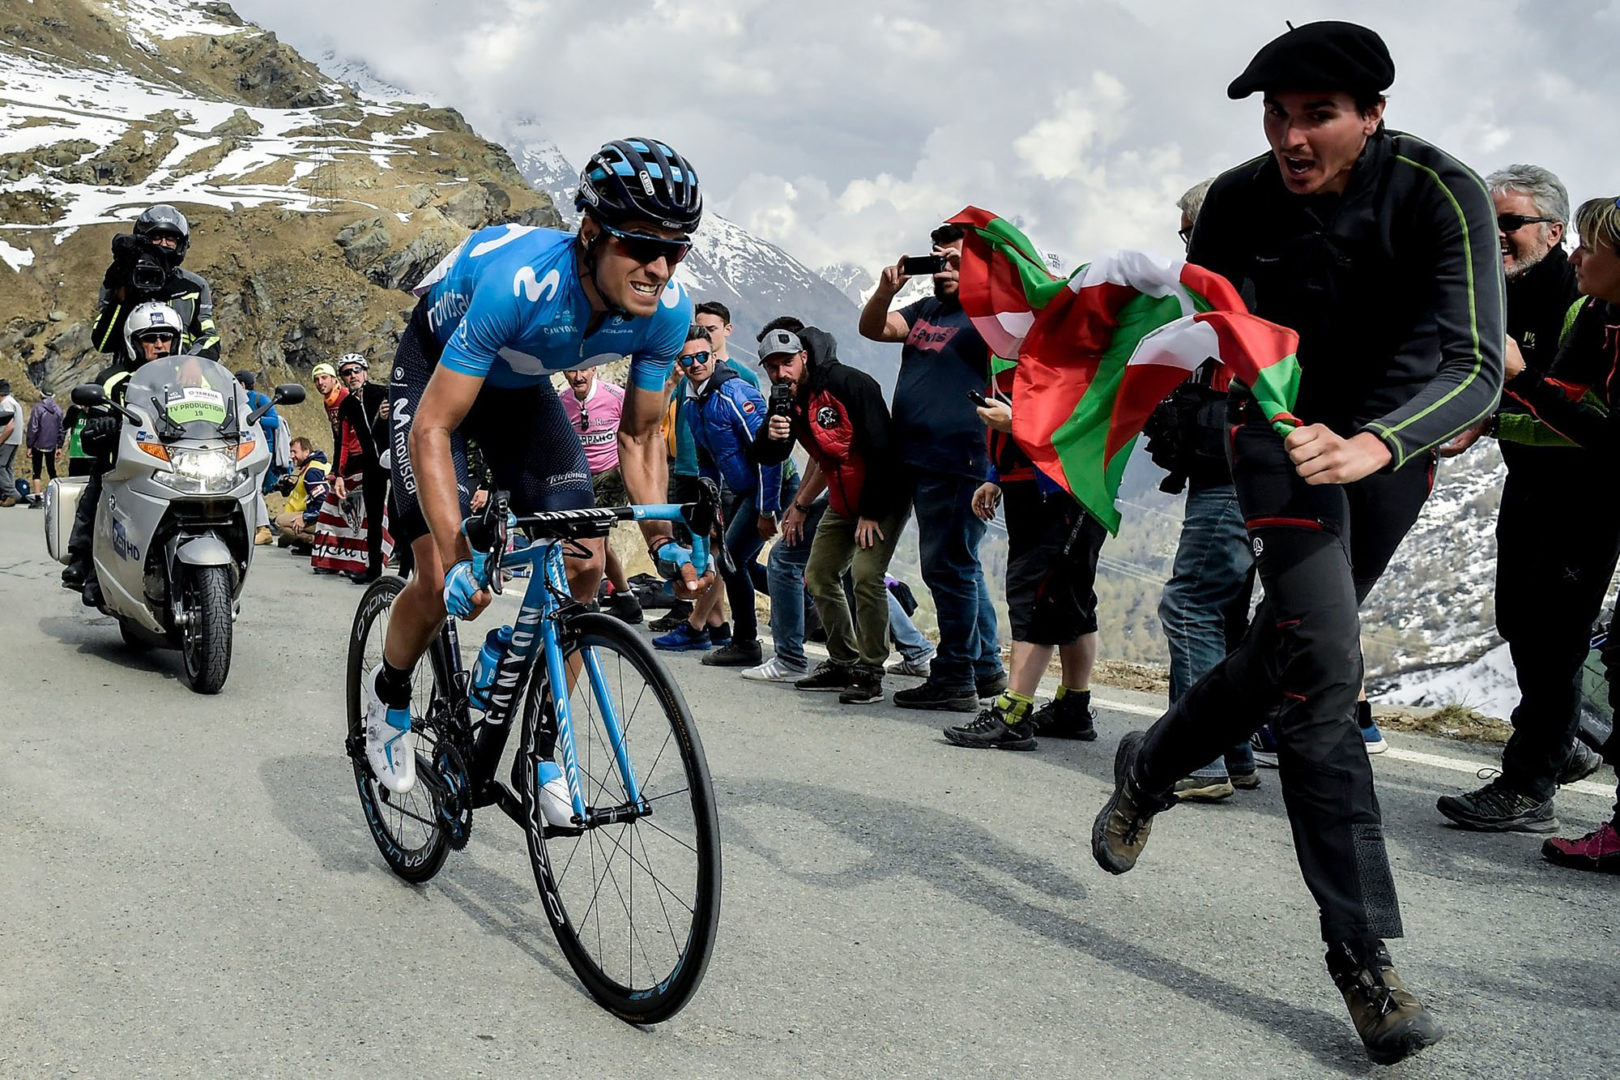 Foto Marco Alpozzi / LaPresse 24 Maggio 2019 Pinerolo (Italia) Sport Ciclismo Giro d'Italia 2019 - edizione 102 - tappa 13 da Pinerolo a Ceresole Reale (Lago Serrù)  km 196 Nella foto: LANDA MEANA Mikel(ESP)(MOVISTAR TEAM)Photo Marco Alpozzi / LaPresse May 25, 2019 Pinerolo (Italy) Sport Cycling Giro d'Italia 2019 - 102th edition -  stage 13 From Pinerolo to Ceresole Reale (Lago Serrù) In the pic: LANDA MEANA Mikel(ESP)(MOVISTAR TEAM)